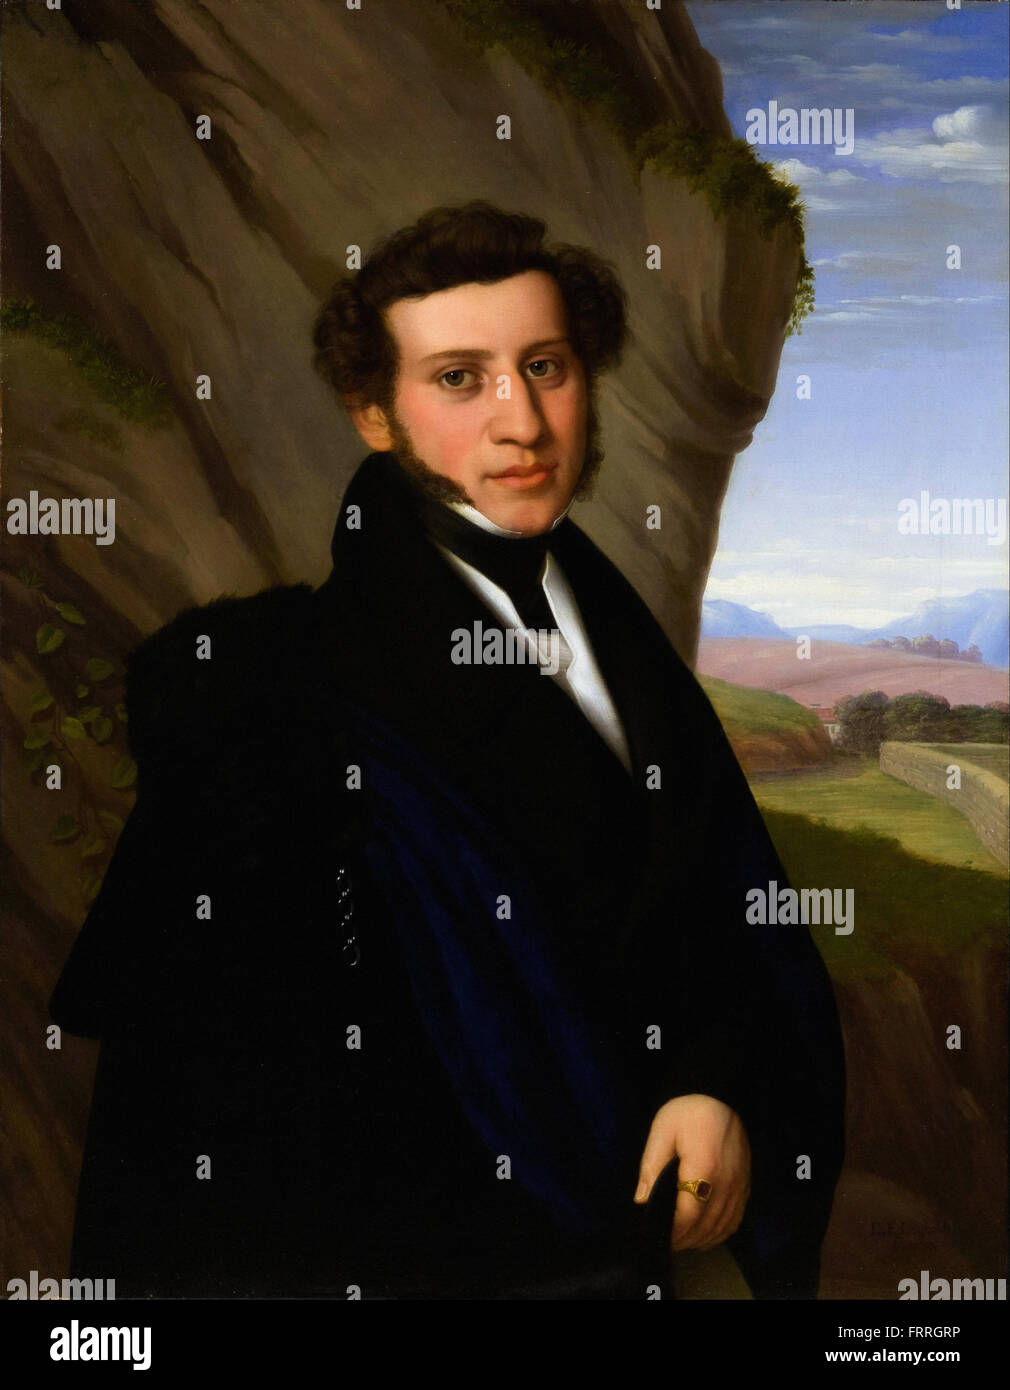 Eduard Friedrich Leybold - Portrait de Sam Ehrenstamm Photo Stock